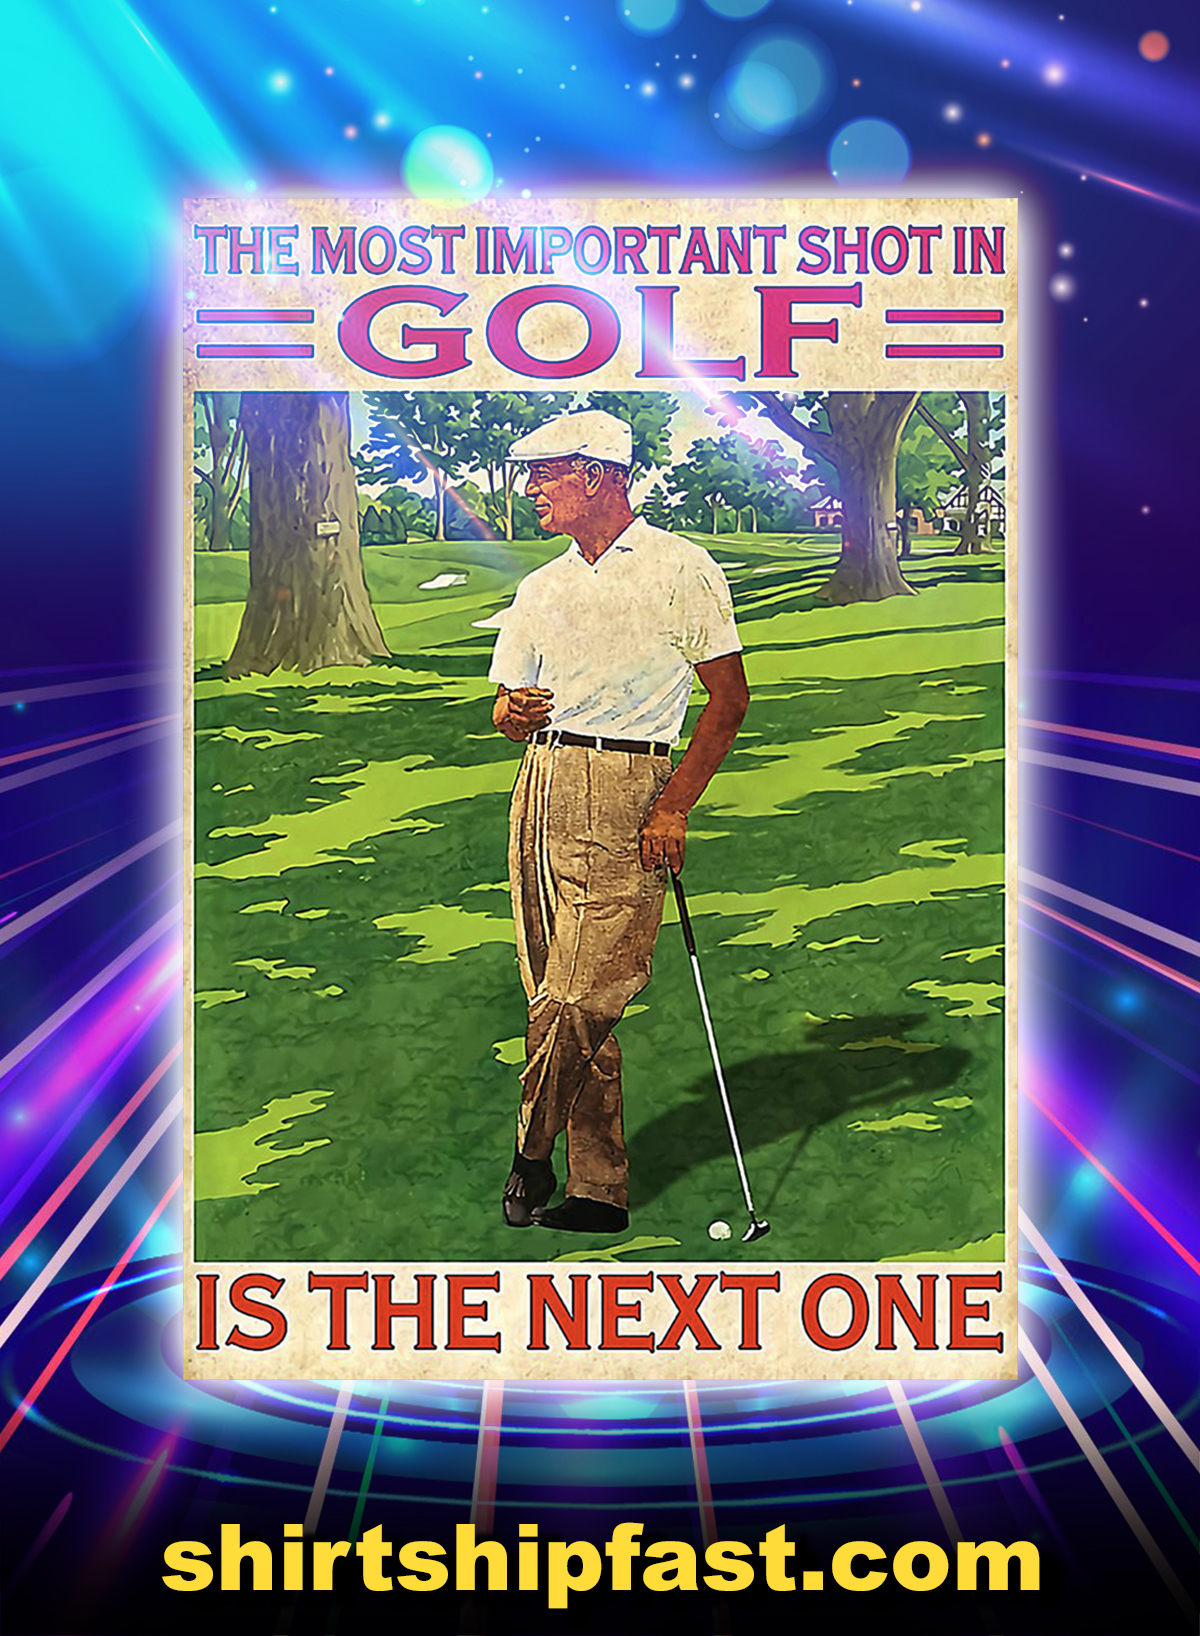 The most important shot in golf is the next one poster - A1